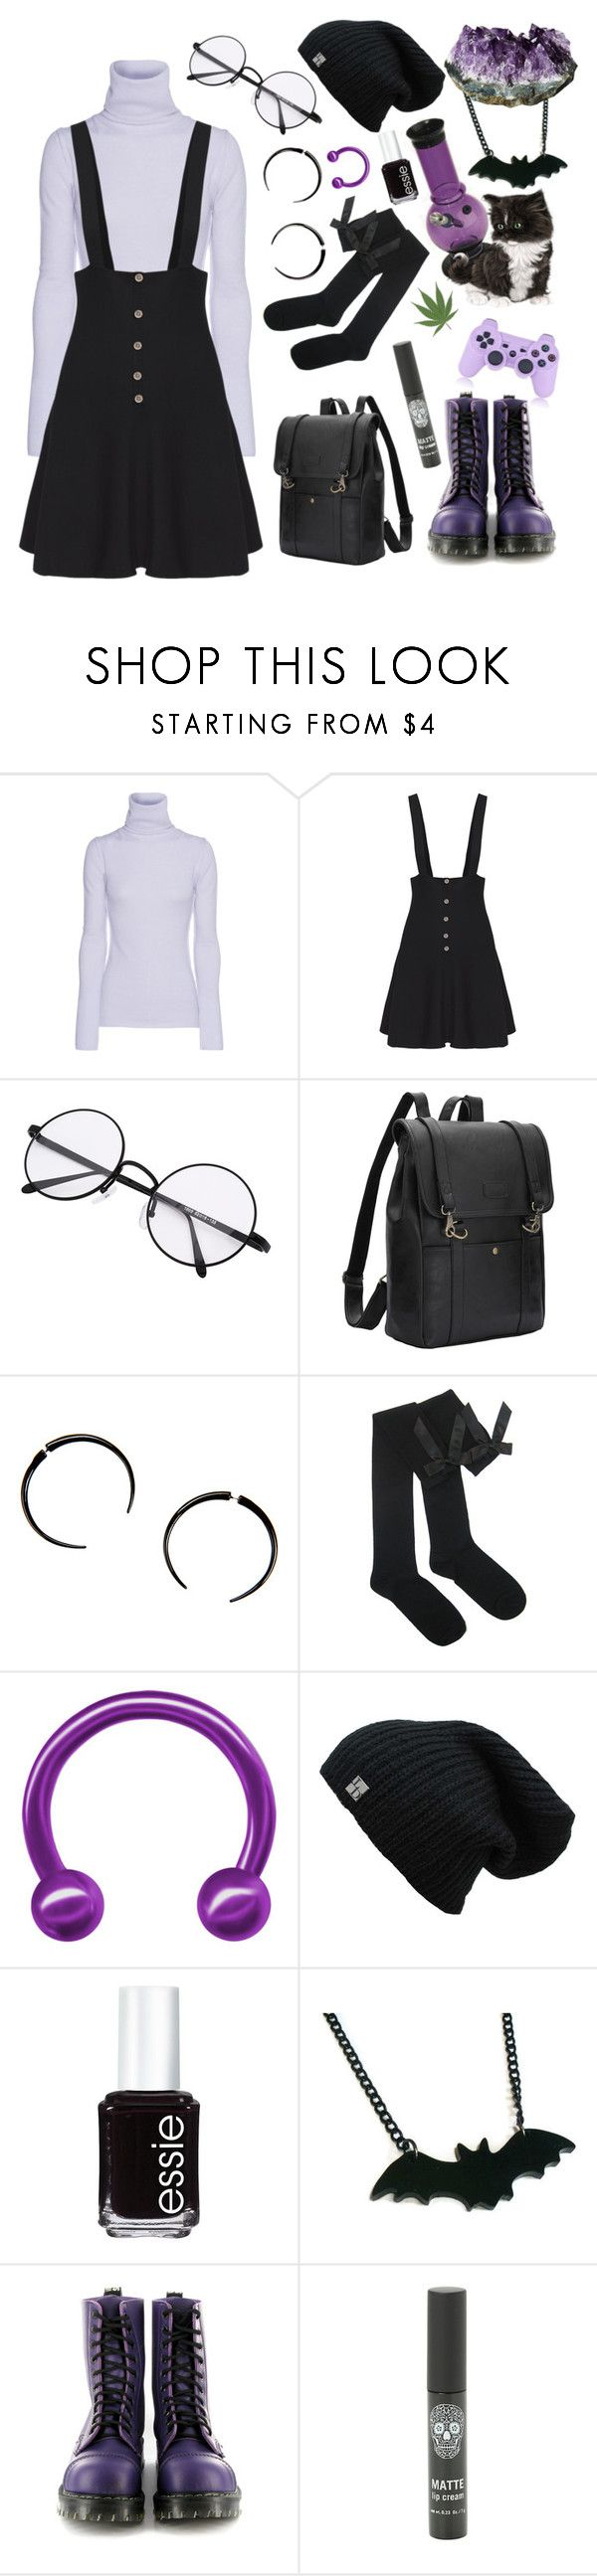 """""""I like lavender and black."""" by ghostlycatgirl ❤ liked on Polyvore featuring Jadicted, Hot Topic, Essie and Vegetarian Shoes"""